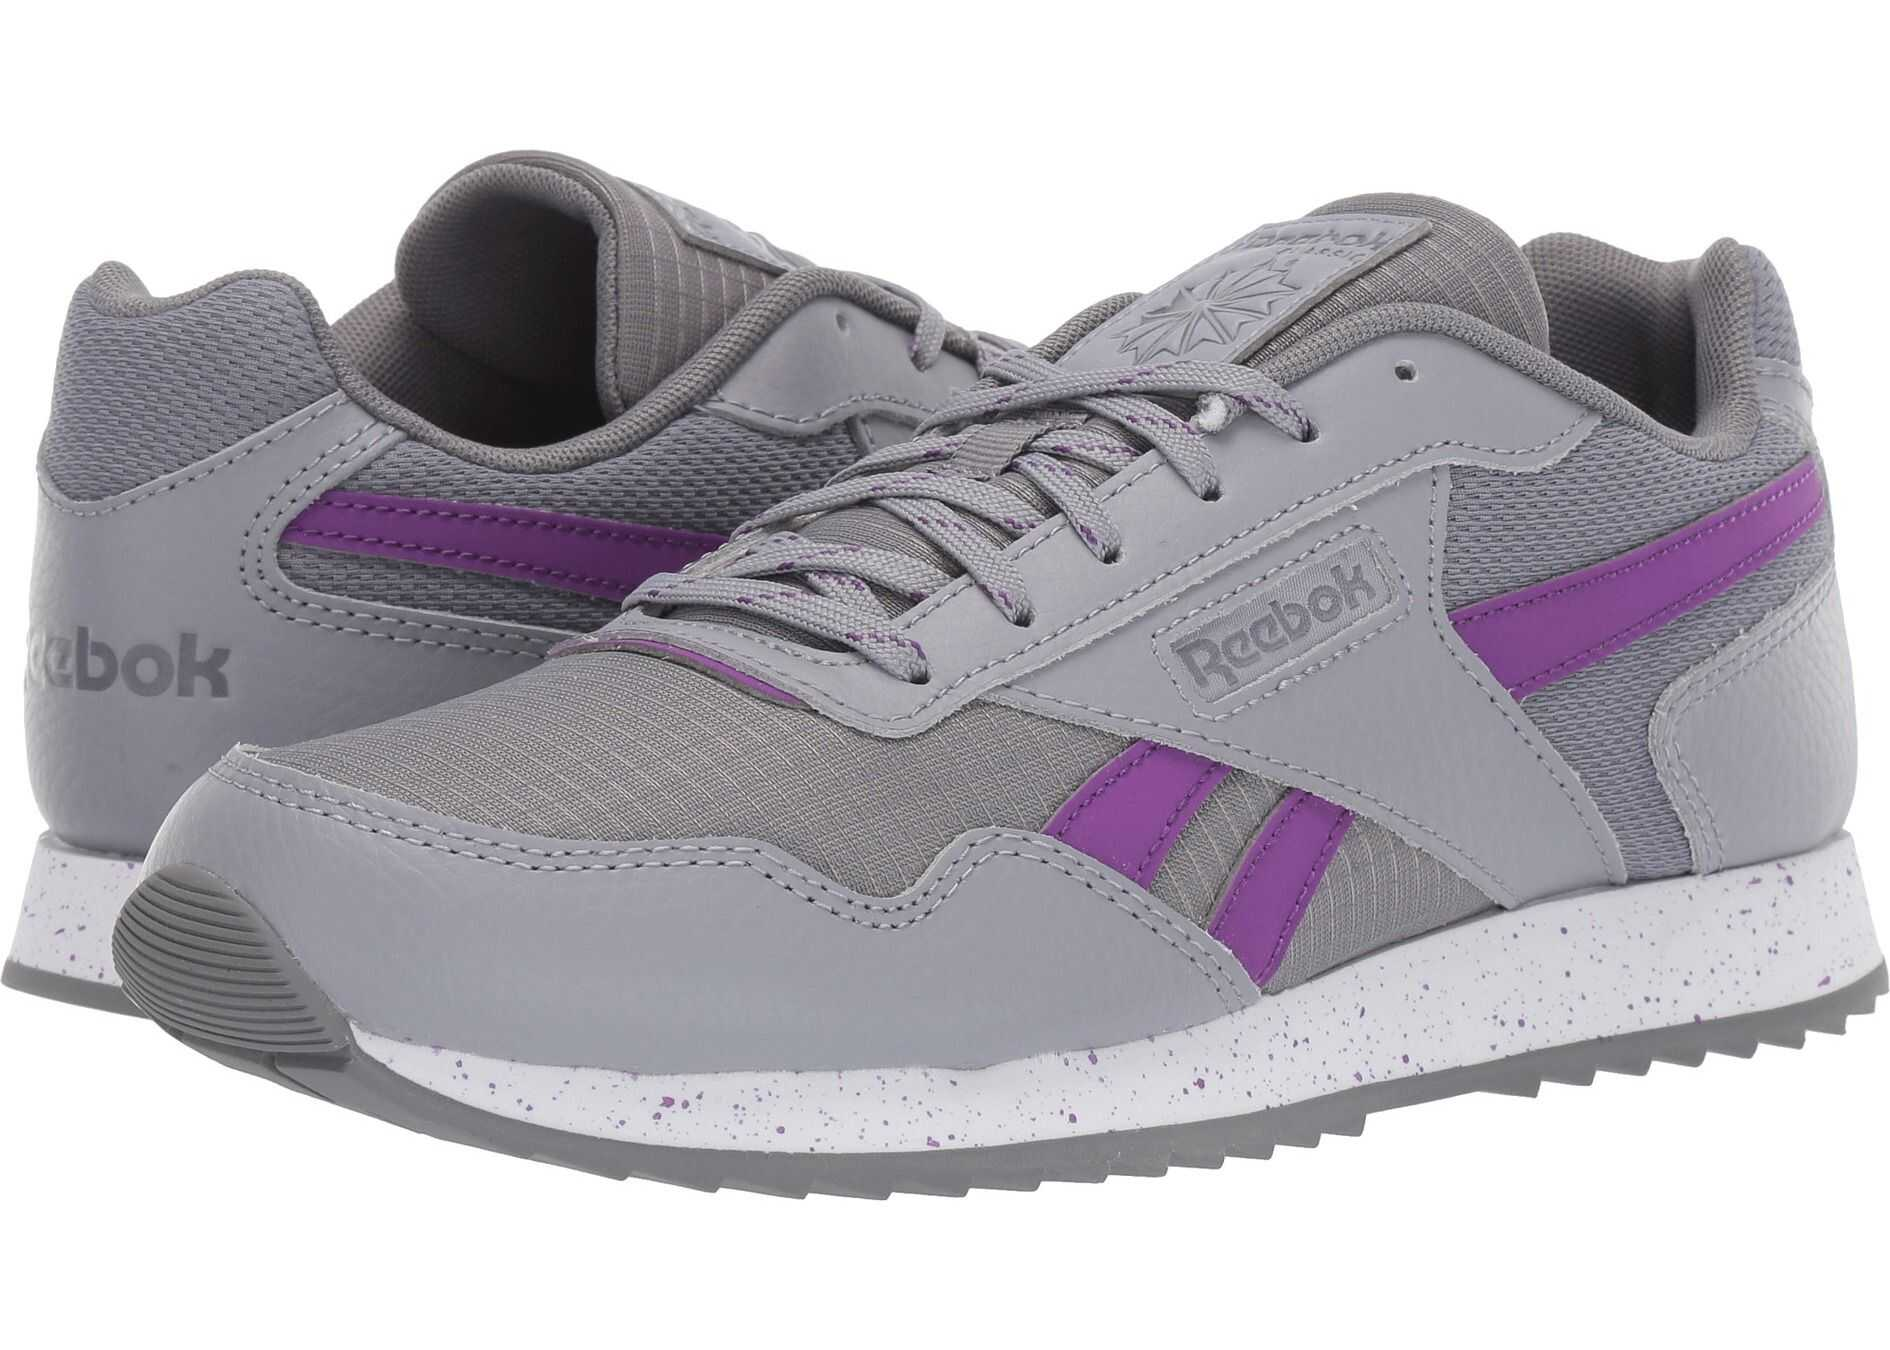 Reebok CL Harman RPL TL Cool Shadow/Regal Purple/Cold Grey 5